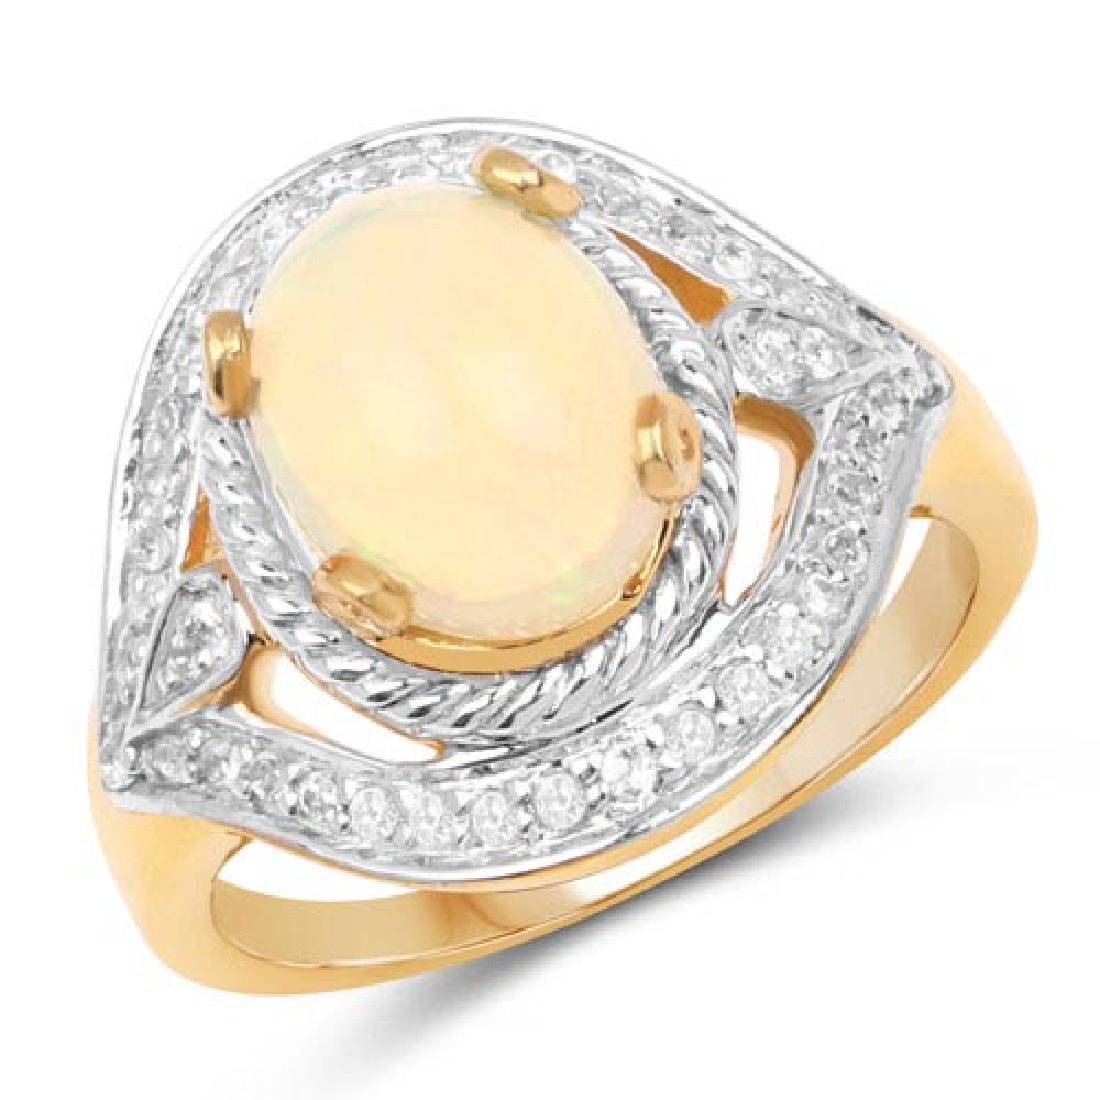 14K Yellow Gold Plated 1.88 Carat Genuine Ethiopian Opa